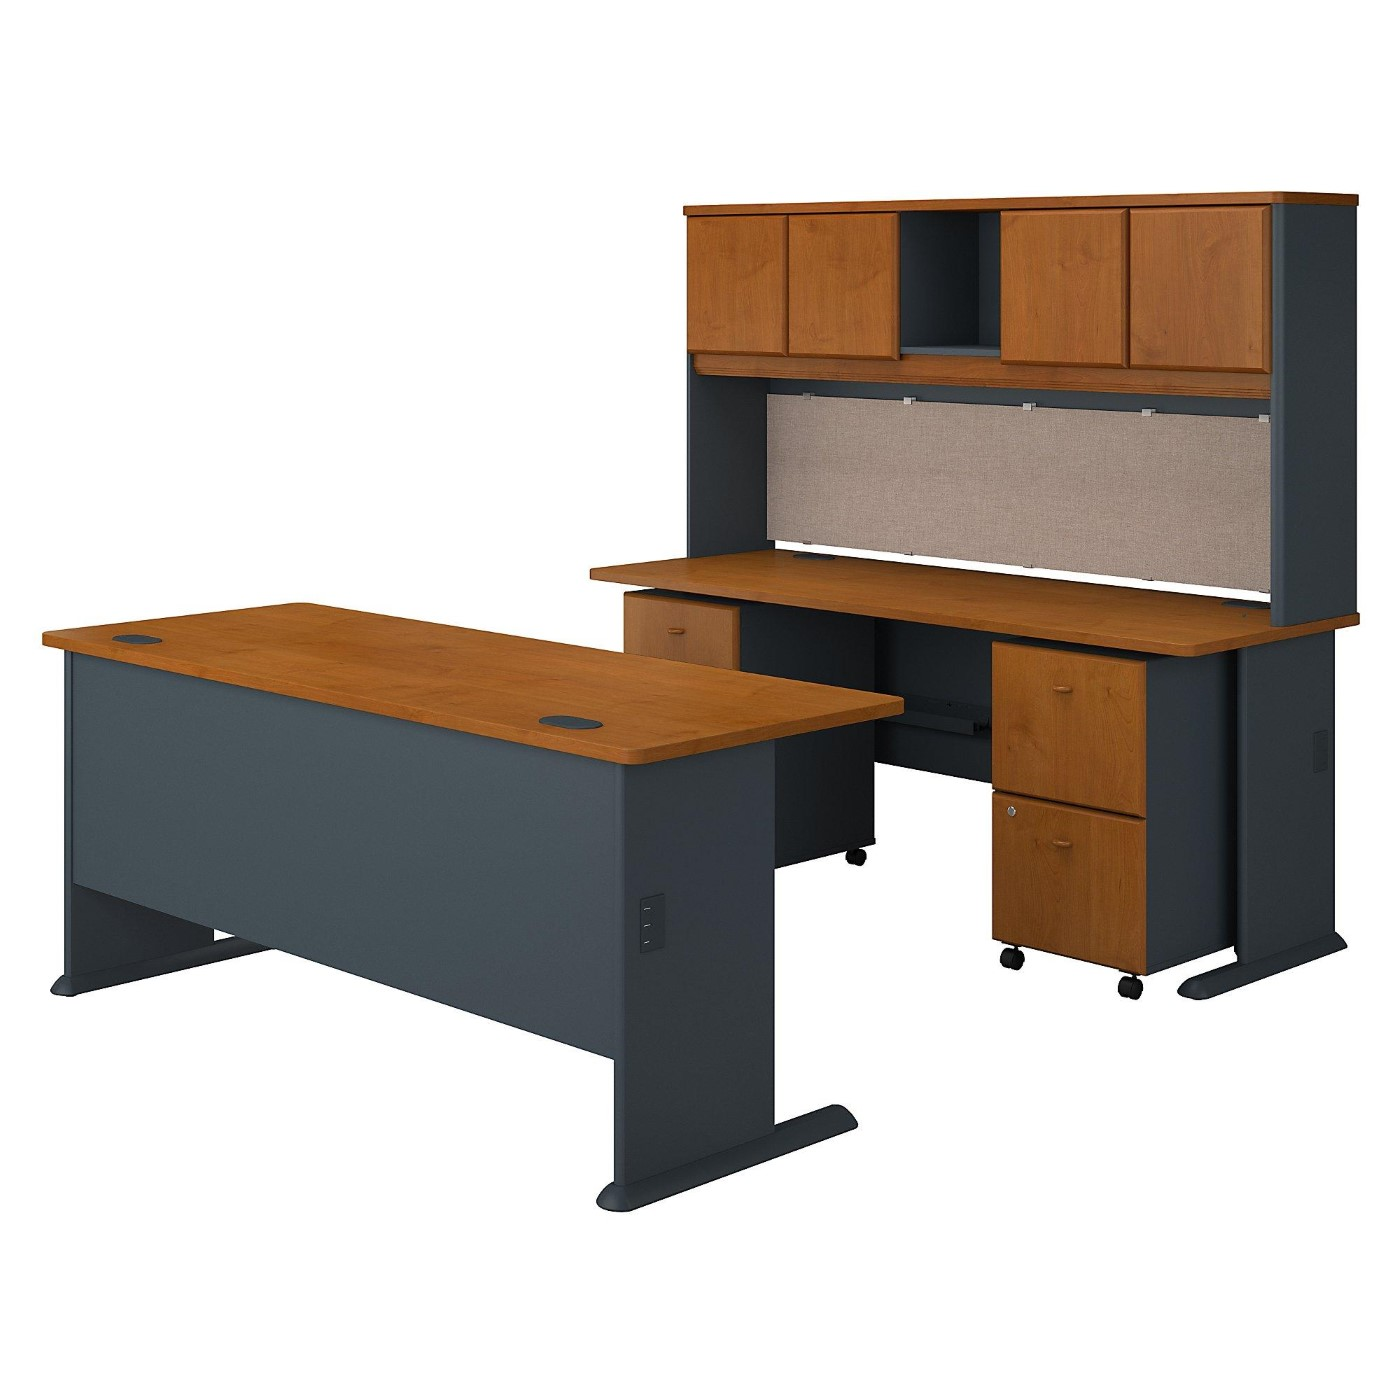 </b></font><b>BUSH BUSINESS FURNITURE SERIES A 72W DESKS WITH HUTCH AND MOBILE FILE CABINETS. FREE SHIPPING</font>. </b></font></b>